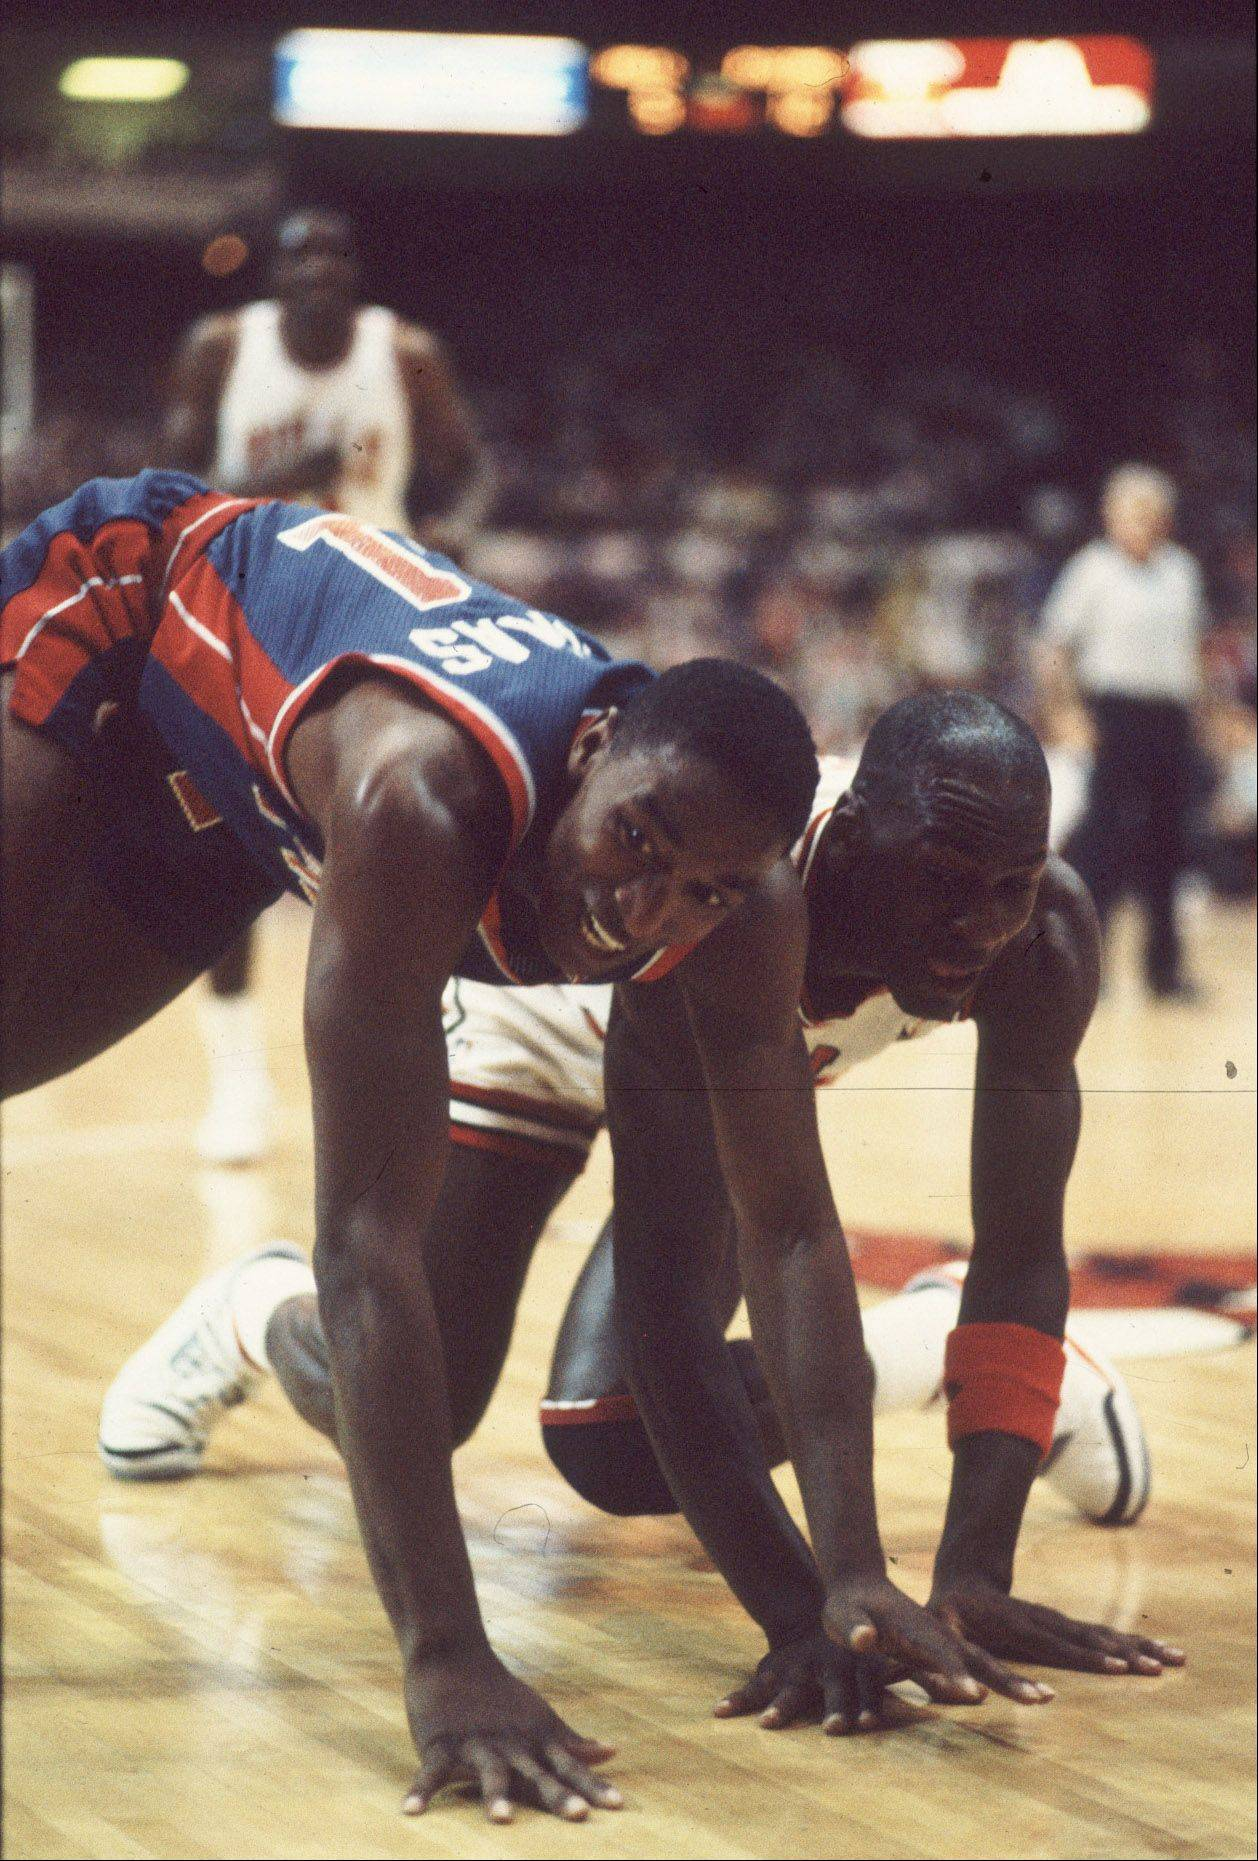 Michael Jordan and Detroit's Isiah Thomas hit the floor after scrambling for a ball.